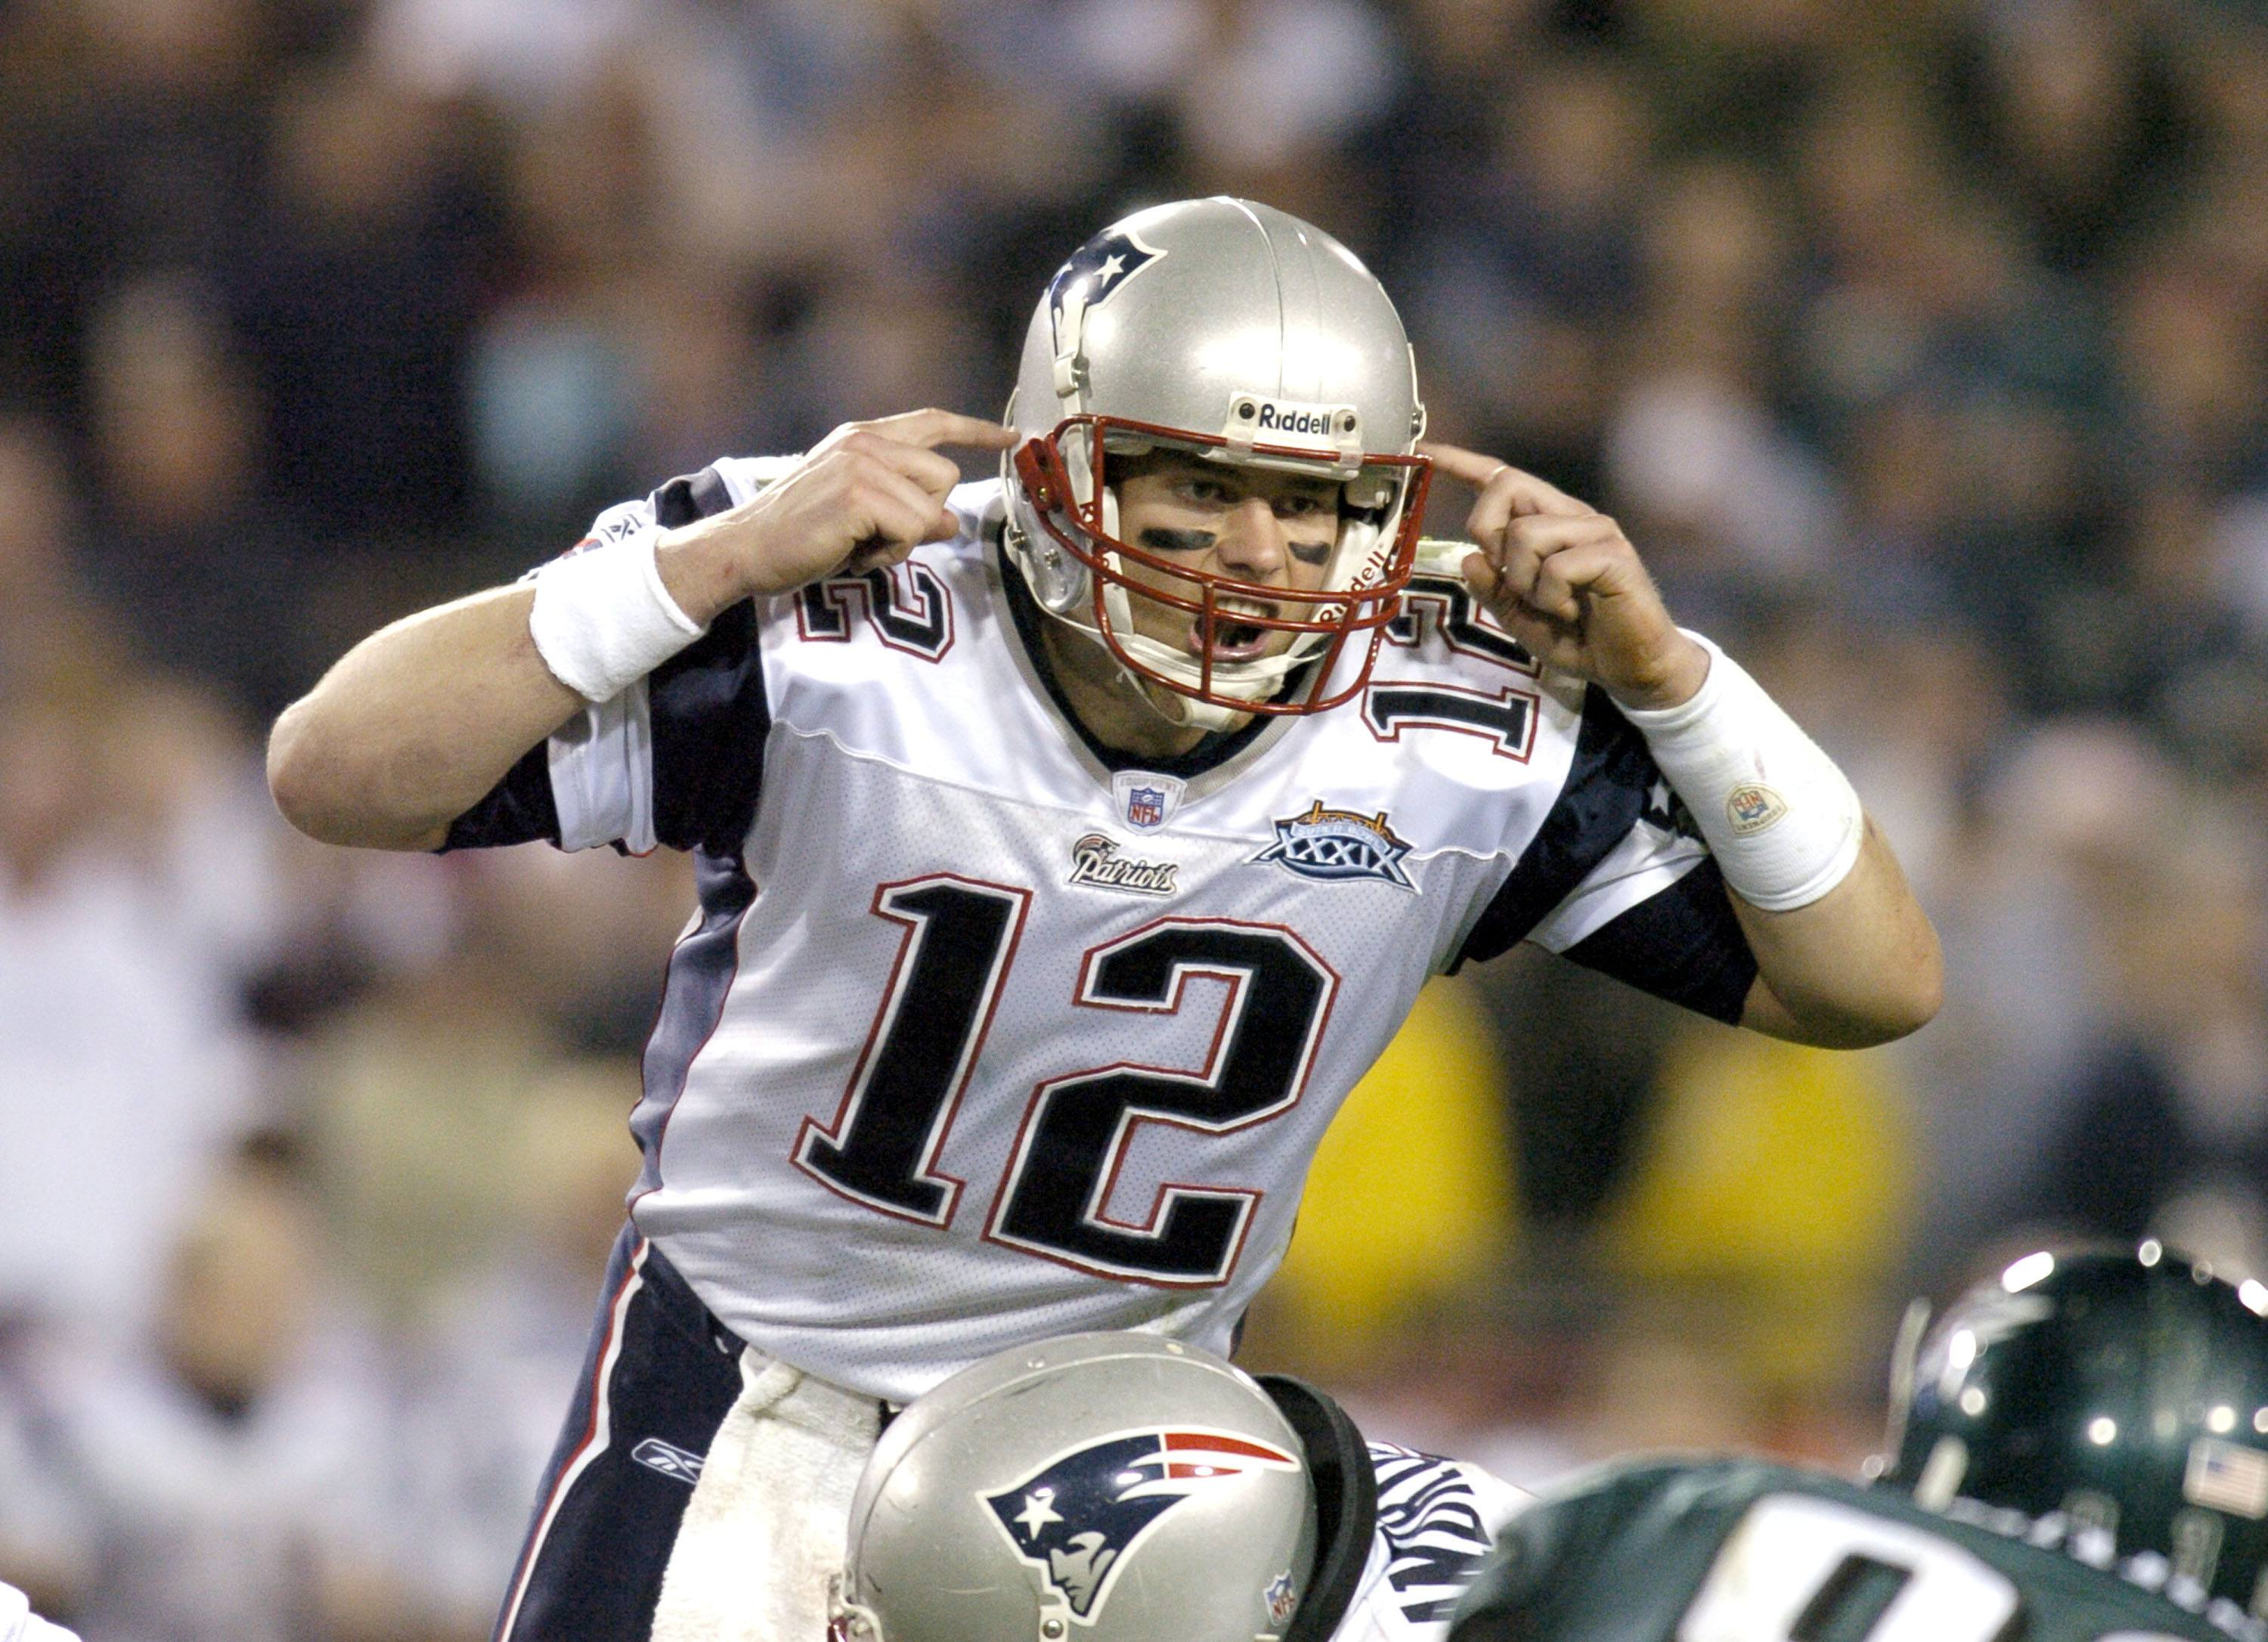 Tom Brady yells before beginning a play.